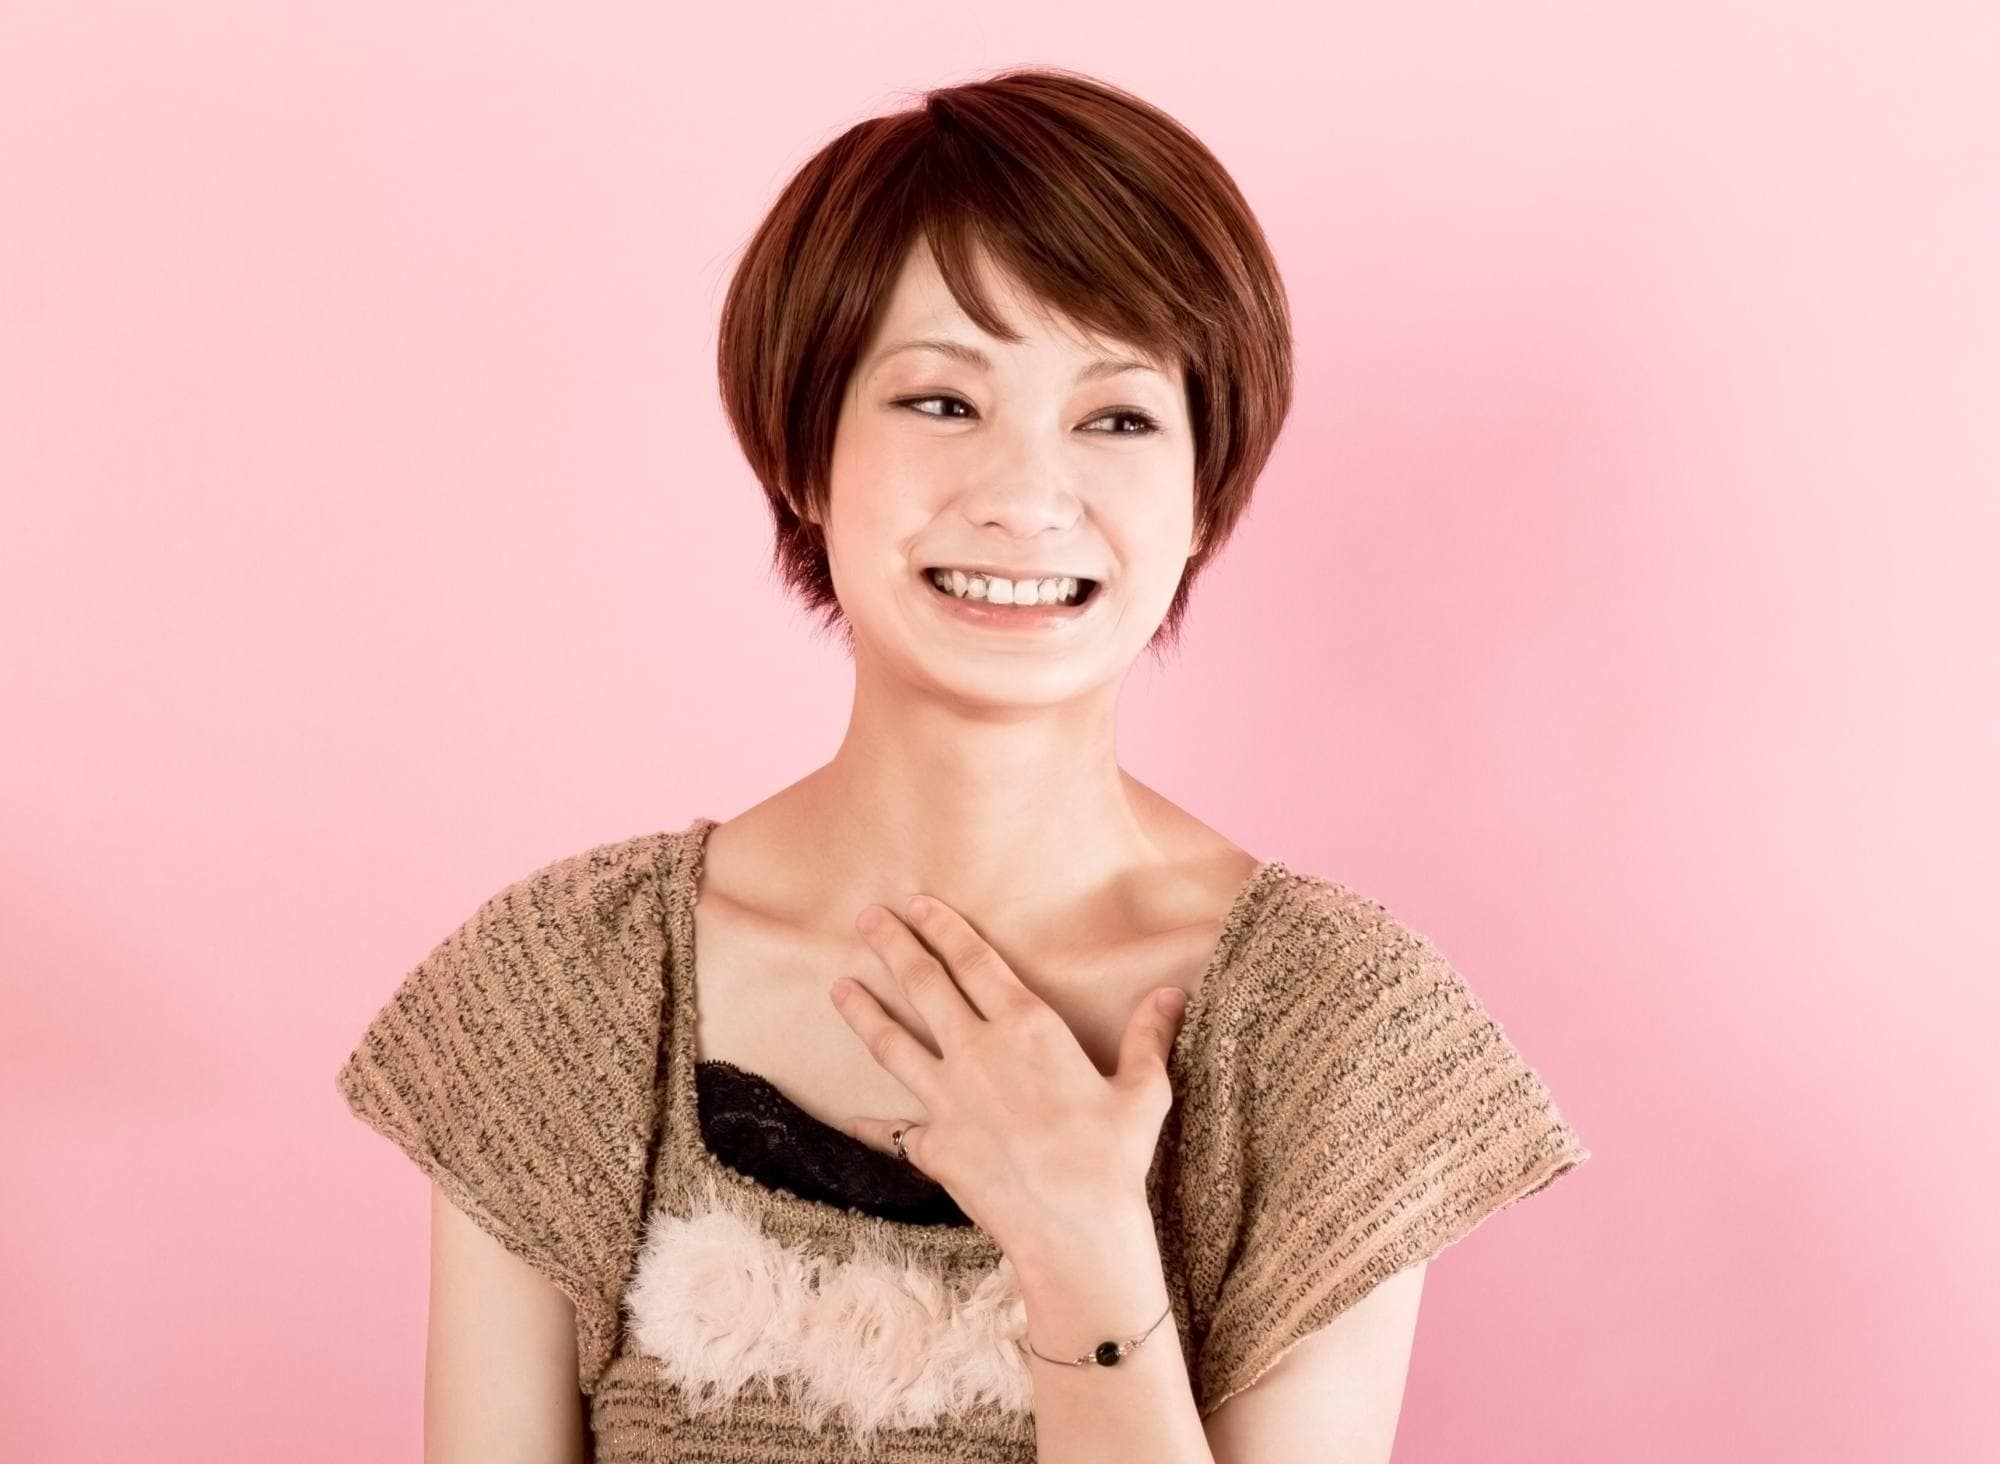 Asian woman with short brown hair wearing a brown blouse smiling